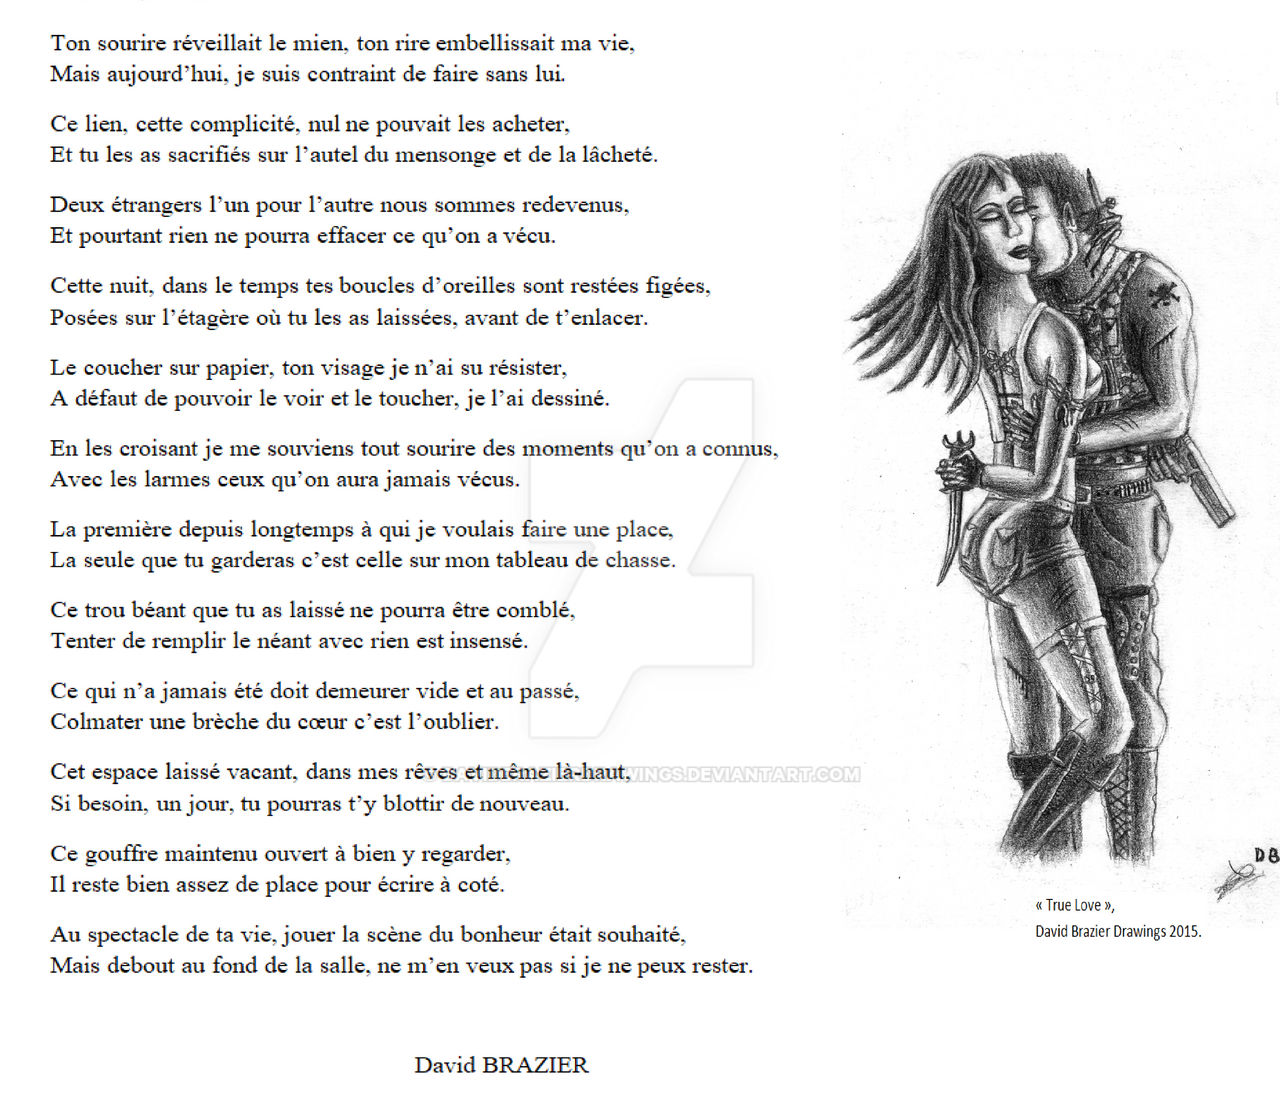 Poeme French By Davidbrazierdrawings On Deviantart